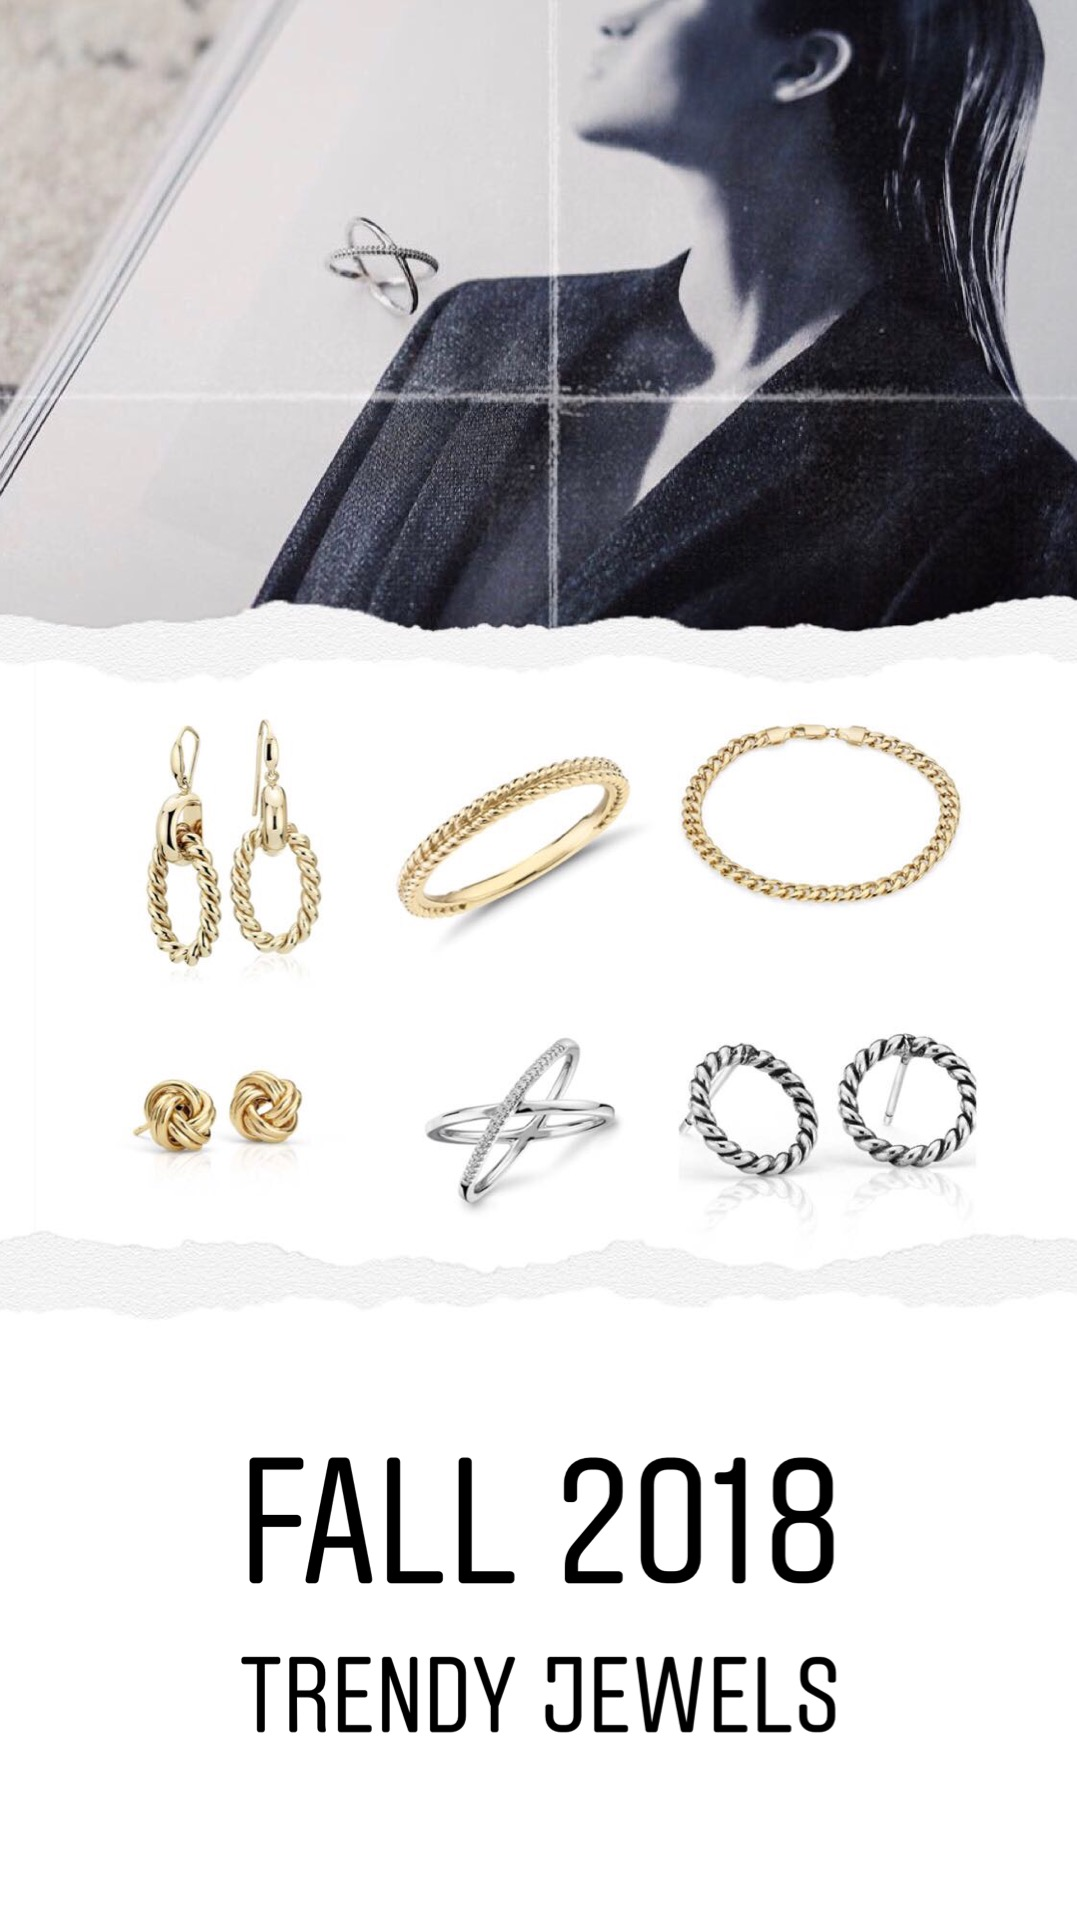 fall 2018 trendy jewels: minimal ring and rope jewels dad jewels blue nile diamond